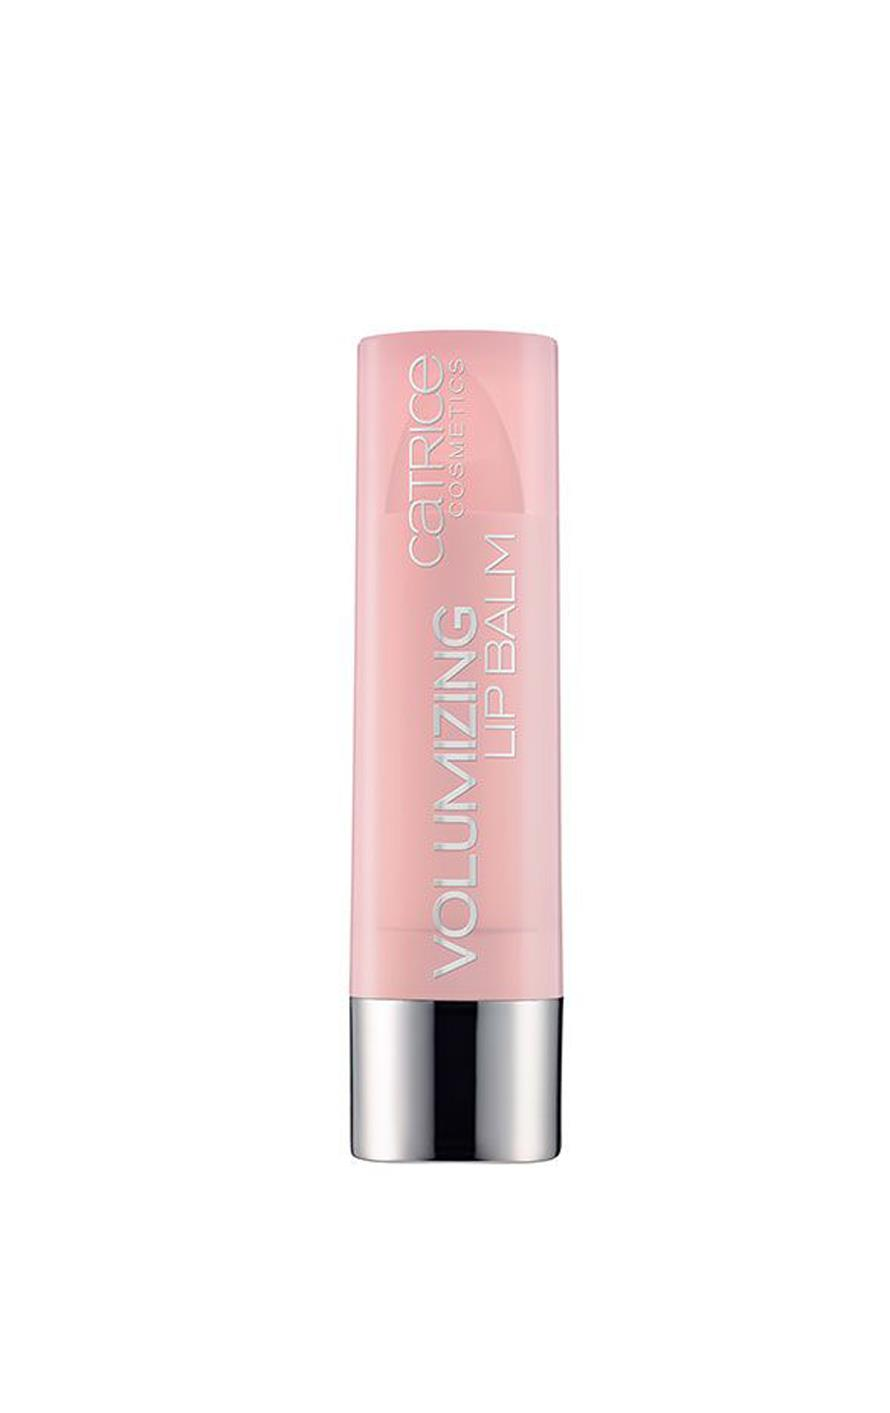 Volumizing Lip Balm de Catrice, 5,19 €